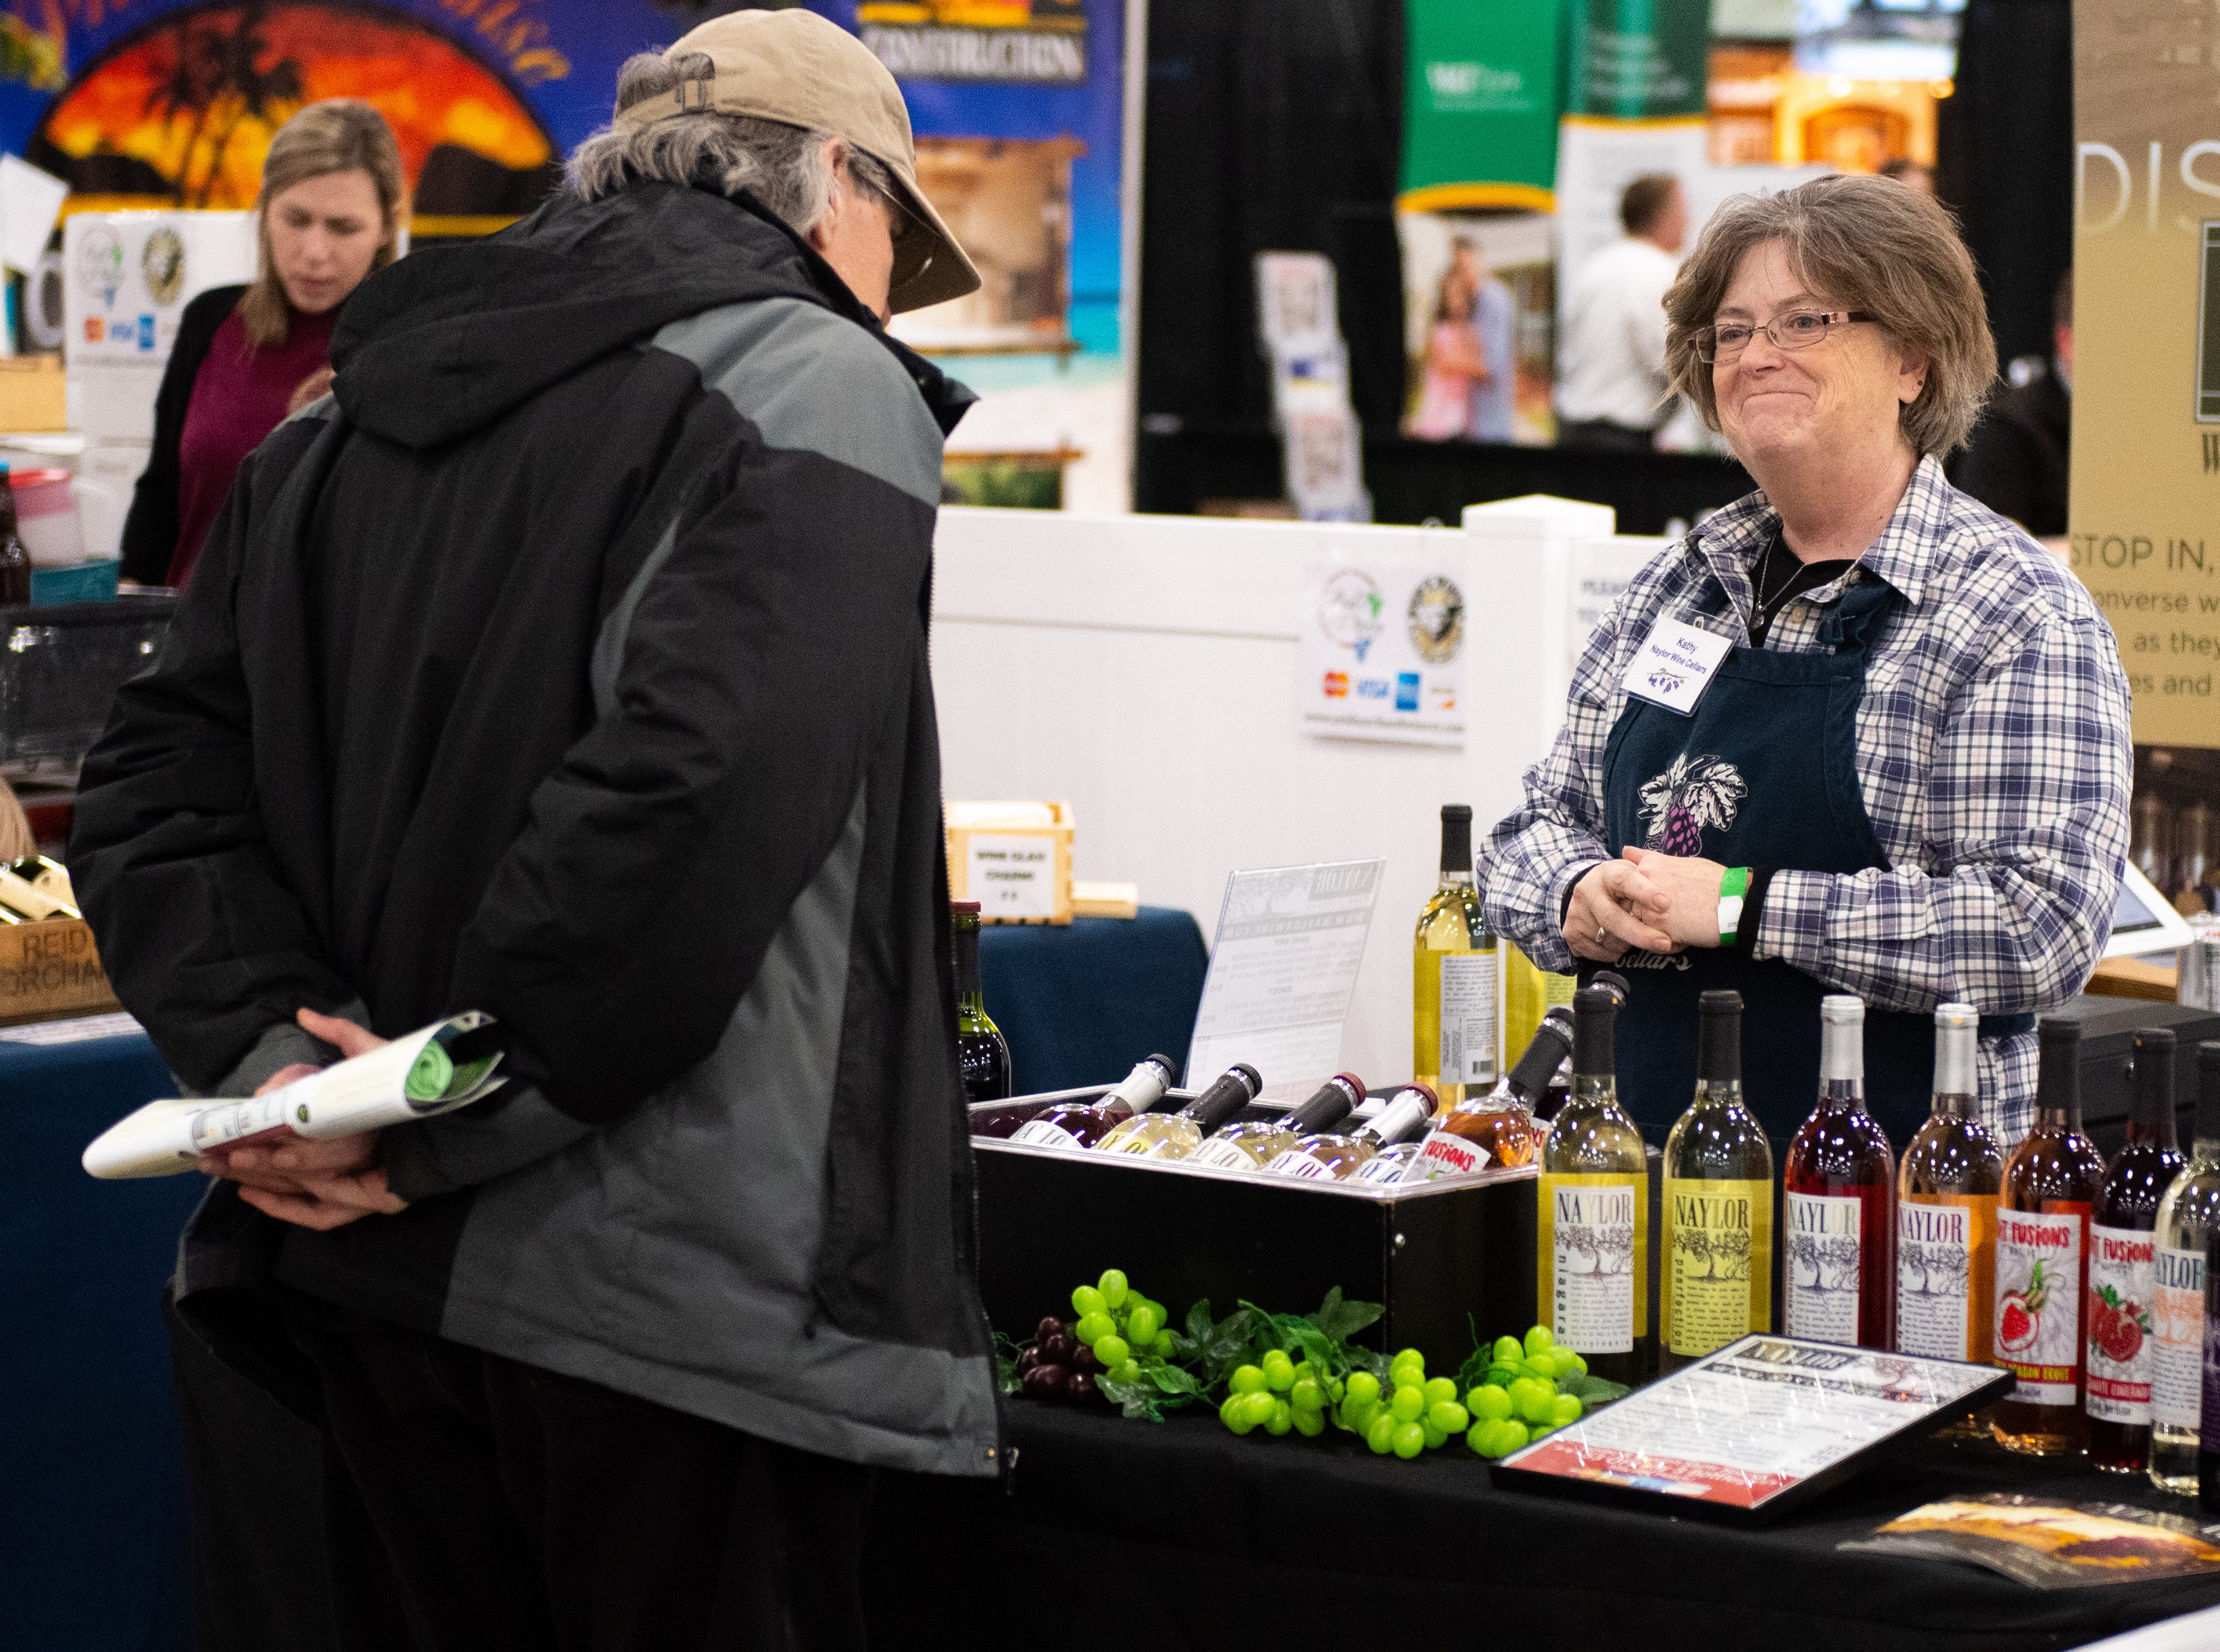 Wine is on sale at the 2019 Home & Garden Show, February 8, 2019.